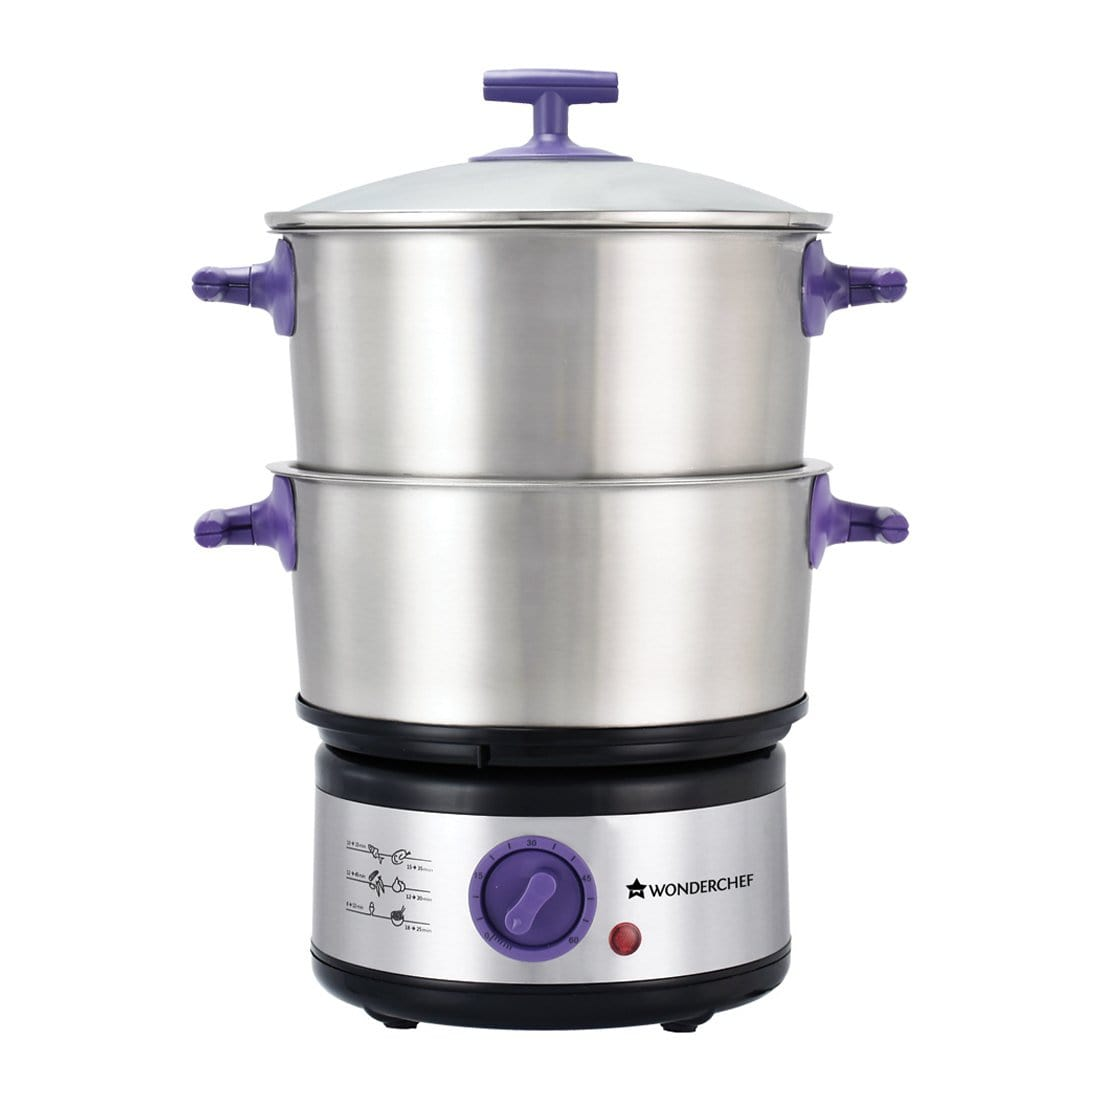 Wonderchef Nutri-Steamer with Egg Boiler-Appliances